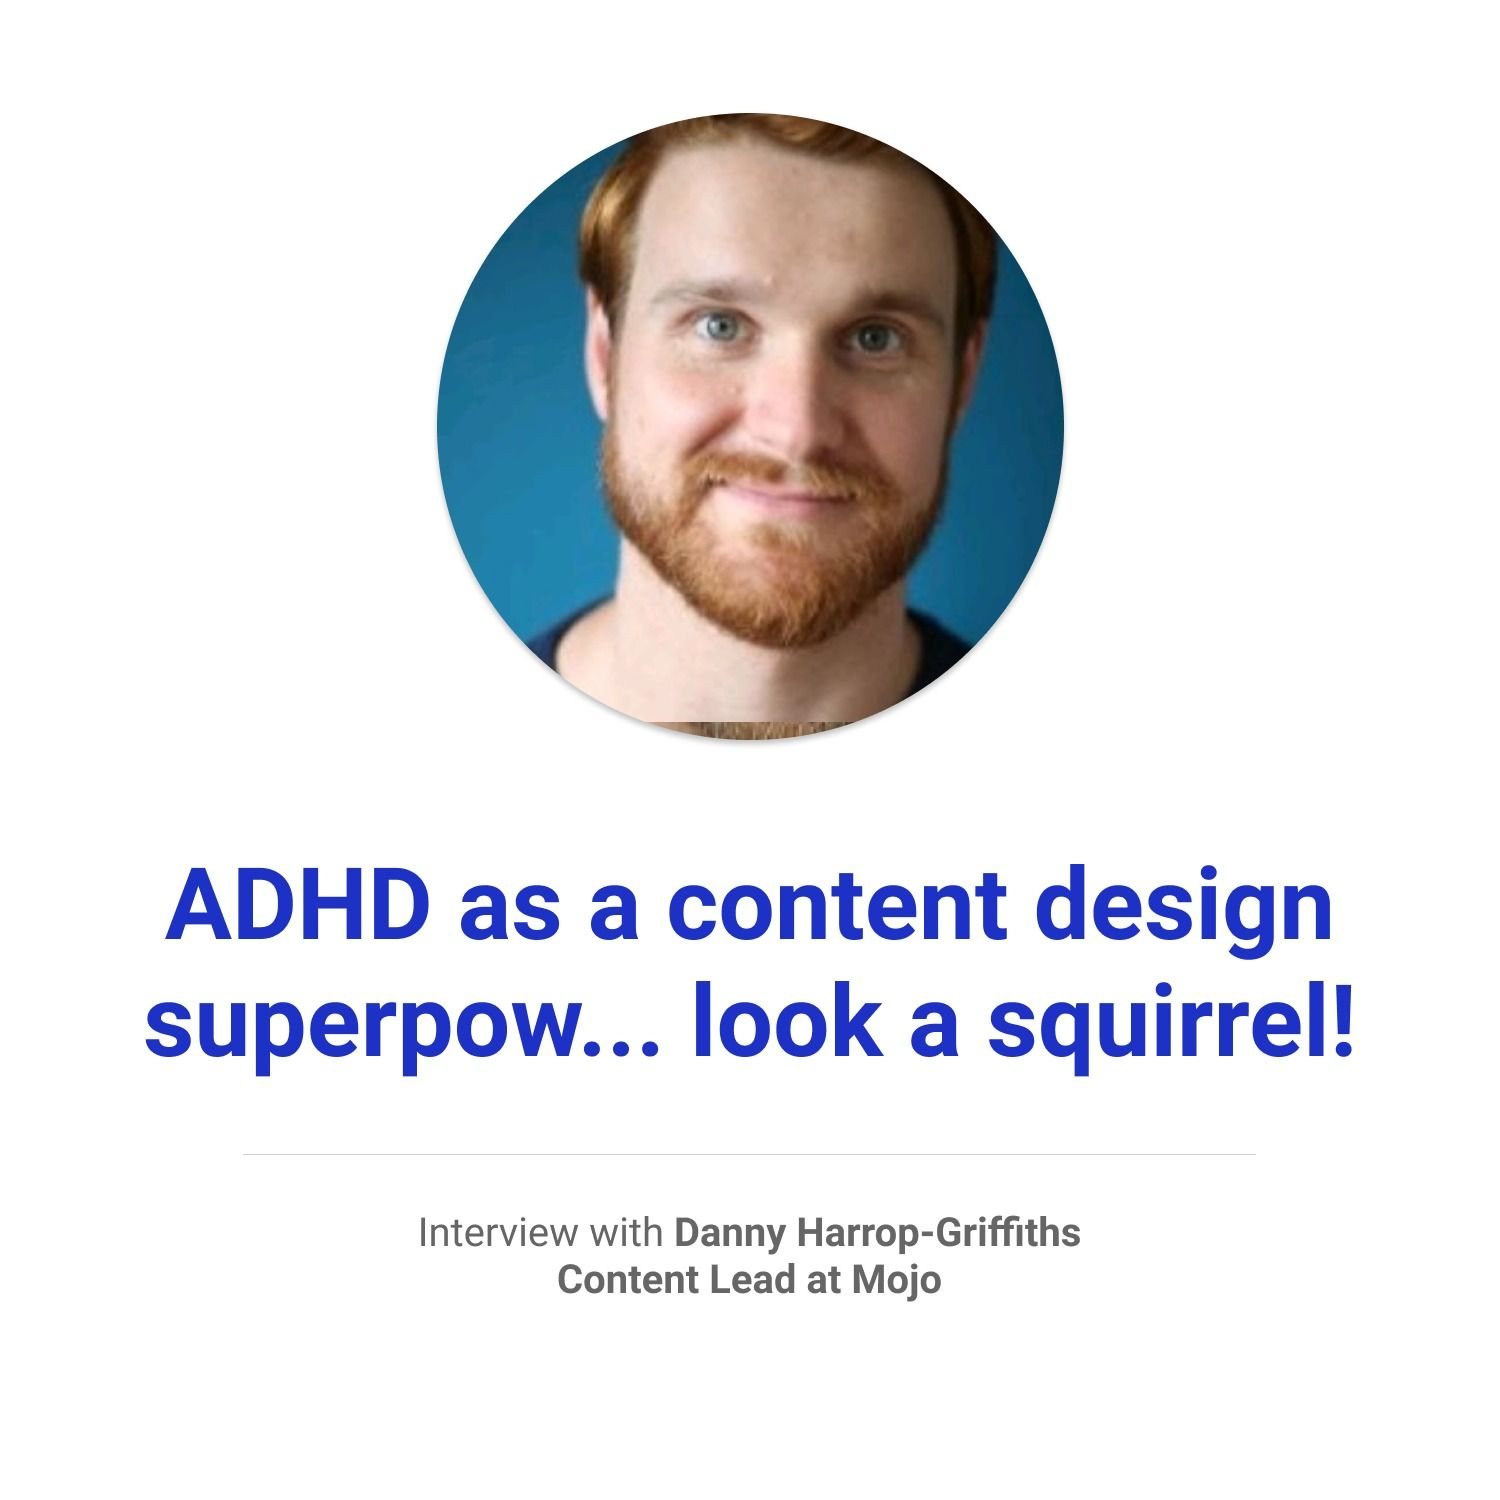 ADHD as a content design superpow... look a squirrel!